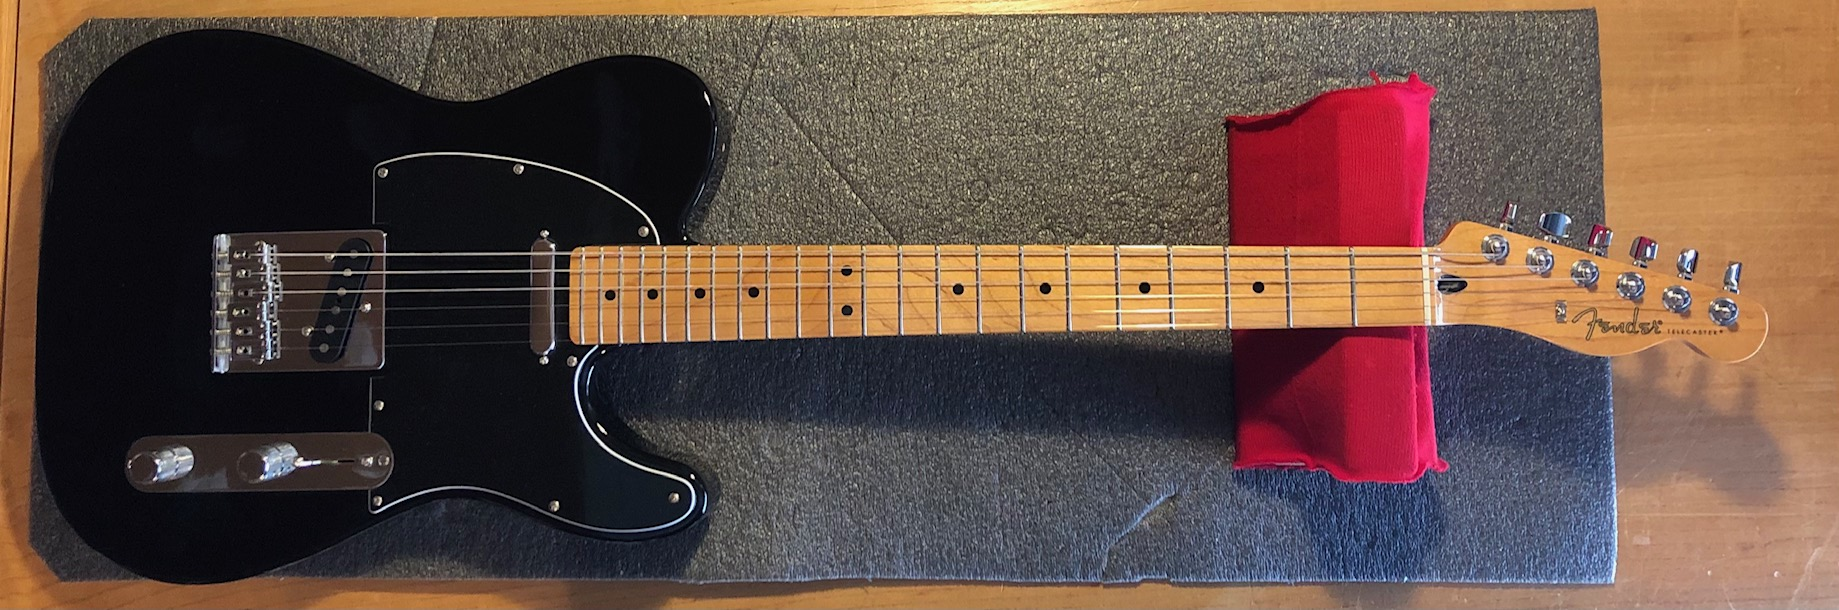 Fender Telecaster Mexican